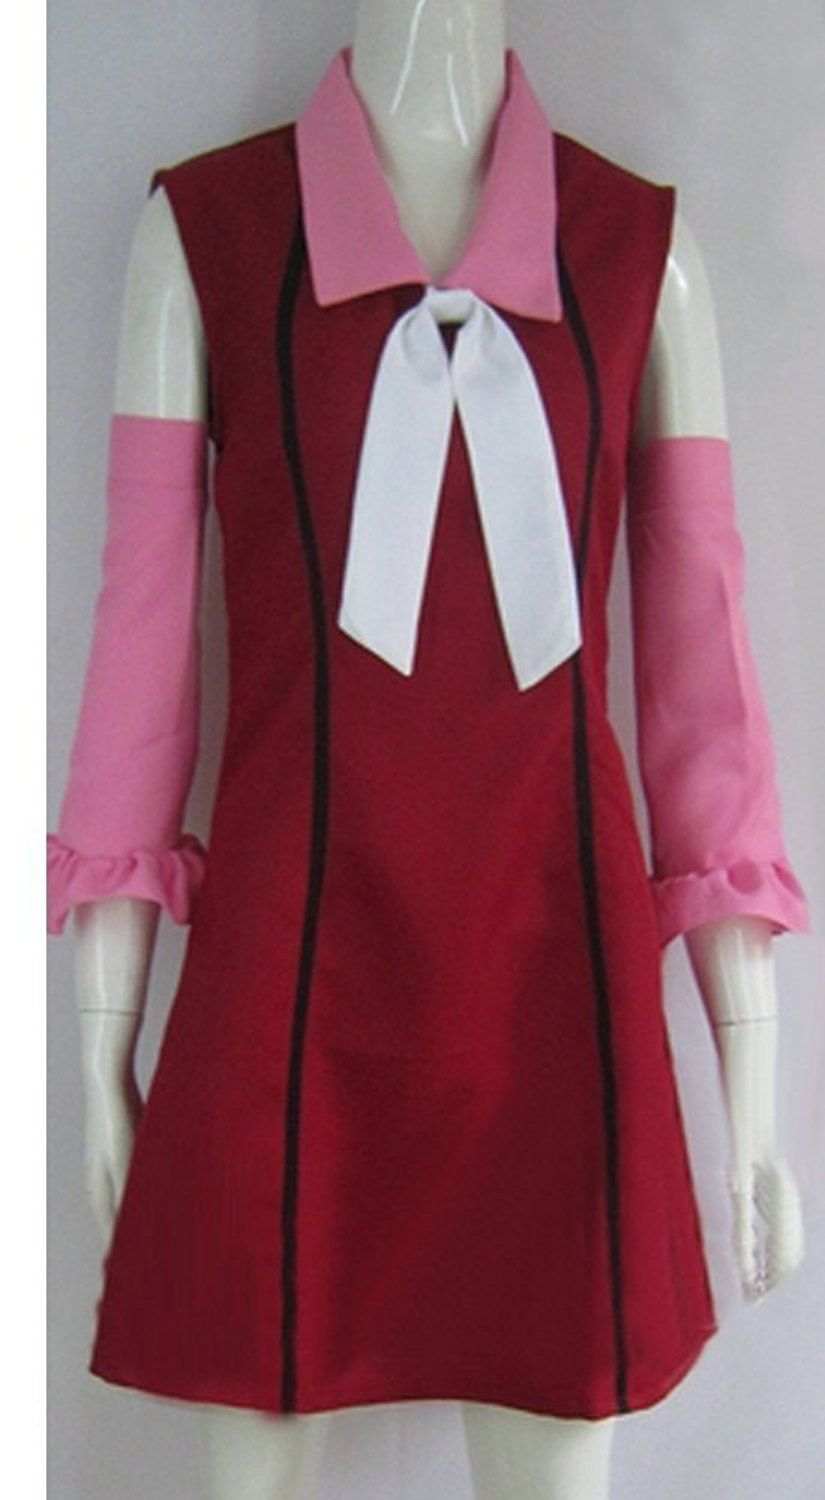 Camplayco Fairy Tail Lisanna Strauss Cosplay Costume >>> Check out the image by visiting the link.